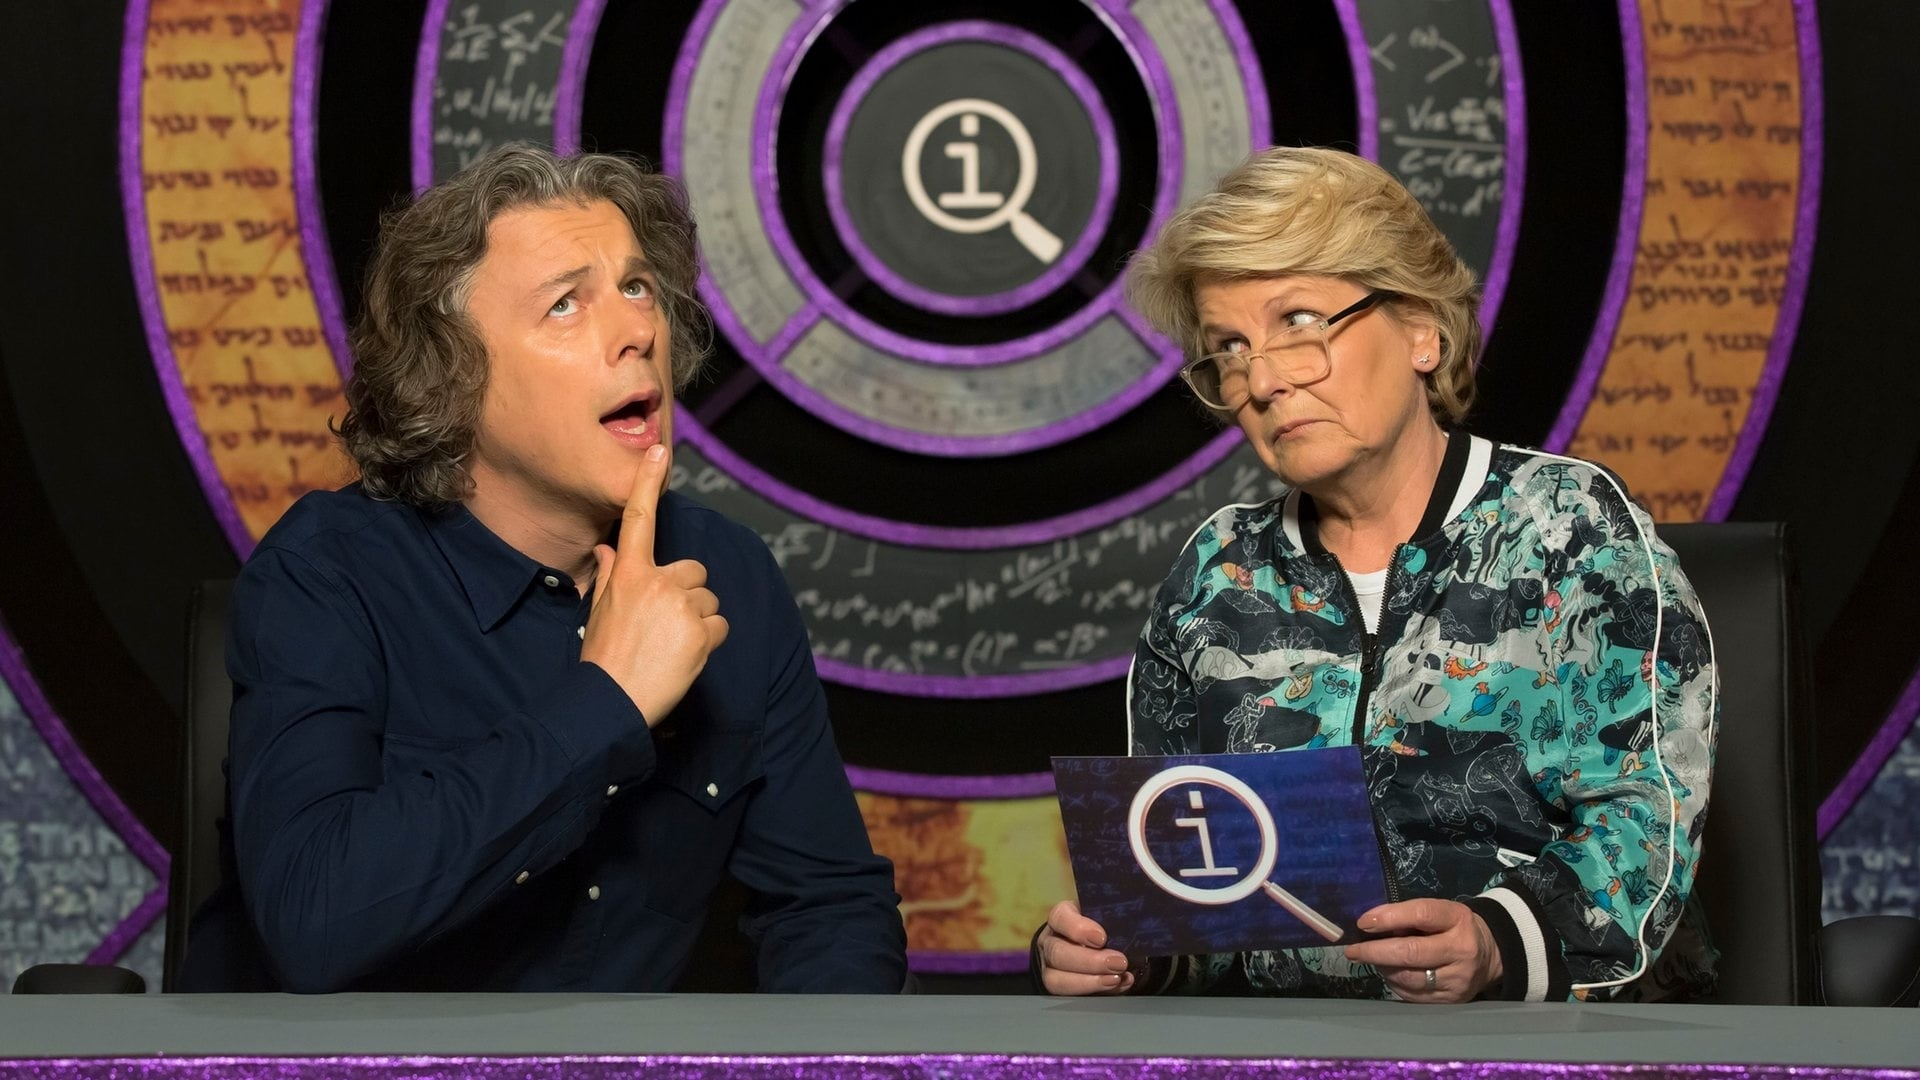 QI - Season 16 Episode 5 : Public and Private